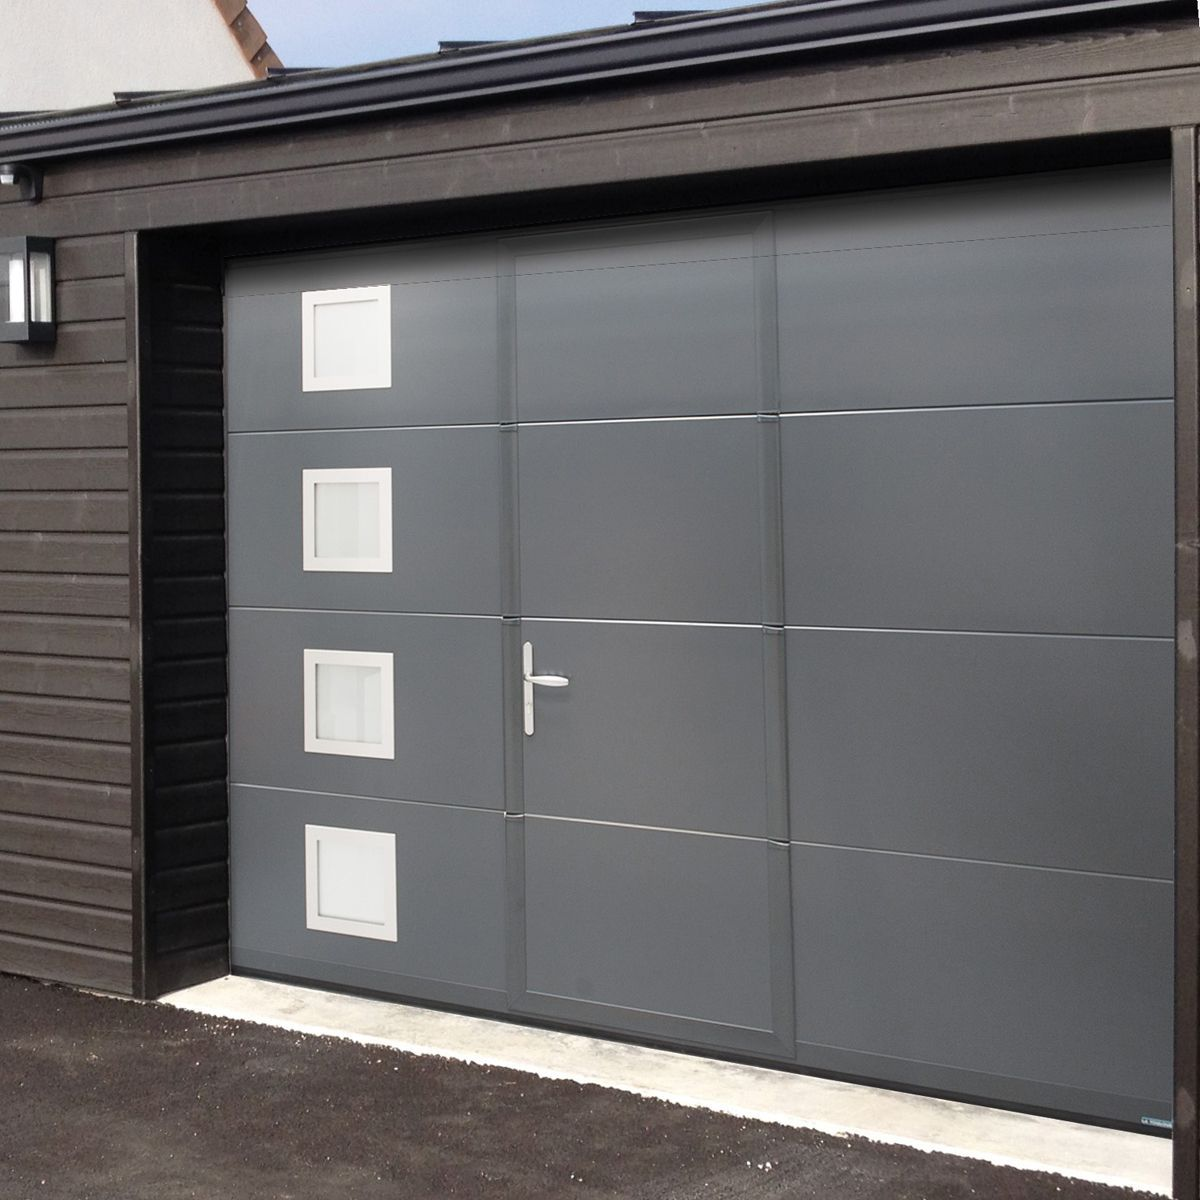 Portes de garage fabriqu es en france sur mesure isoferm for Porte de garage sectionnelle sur mesure hormann